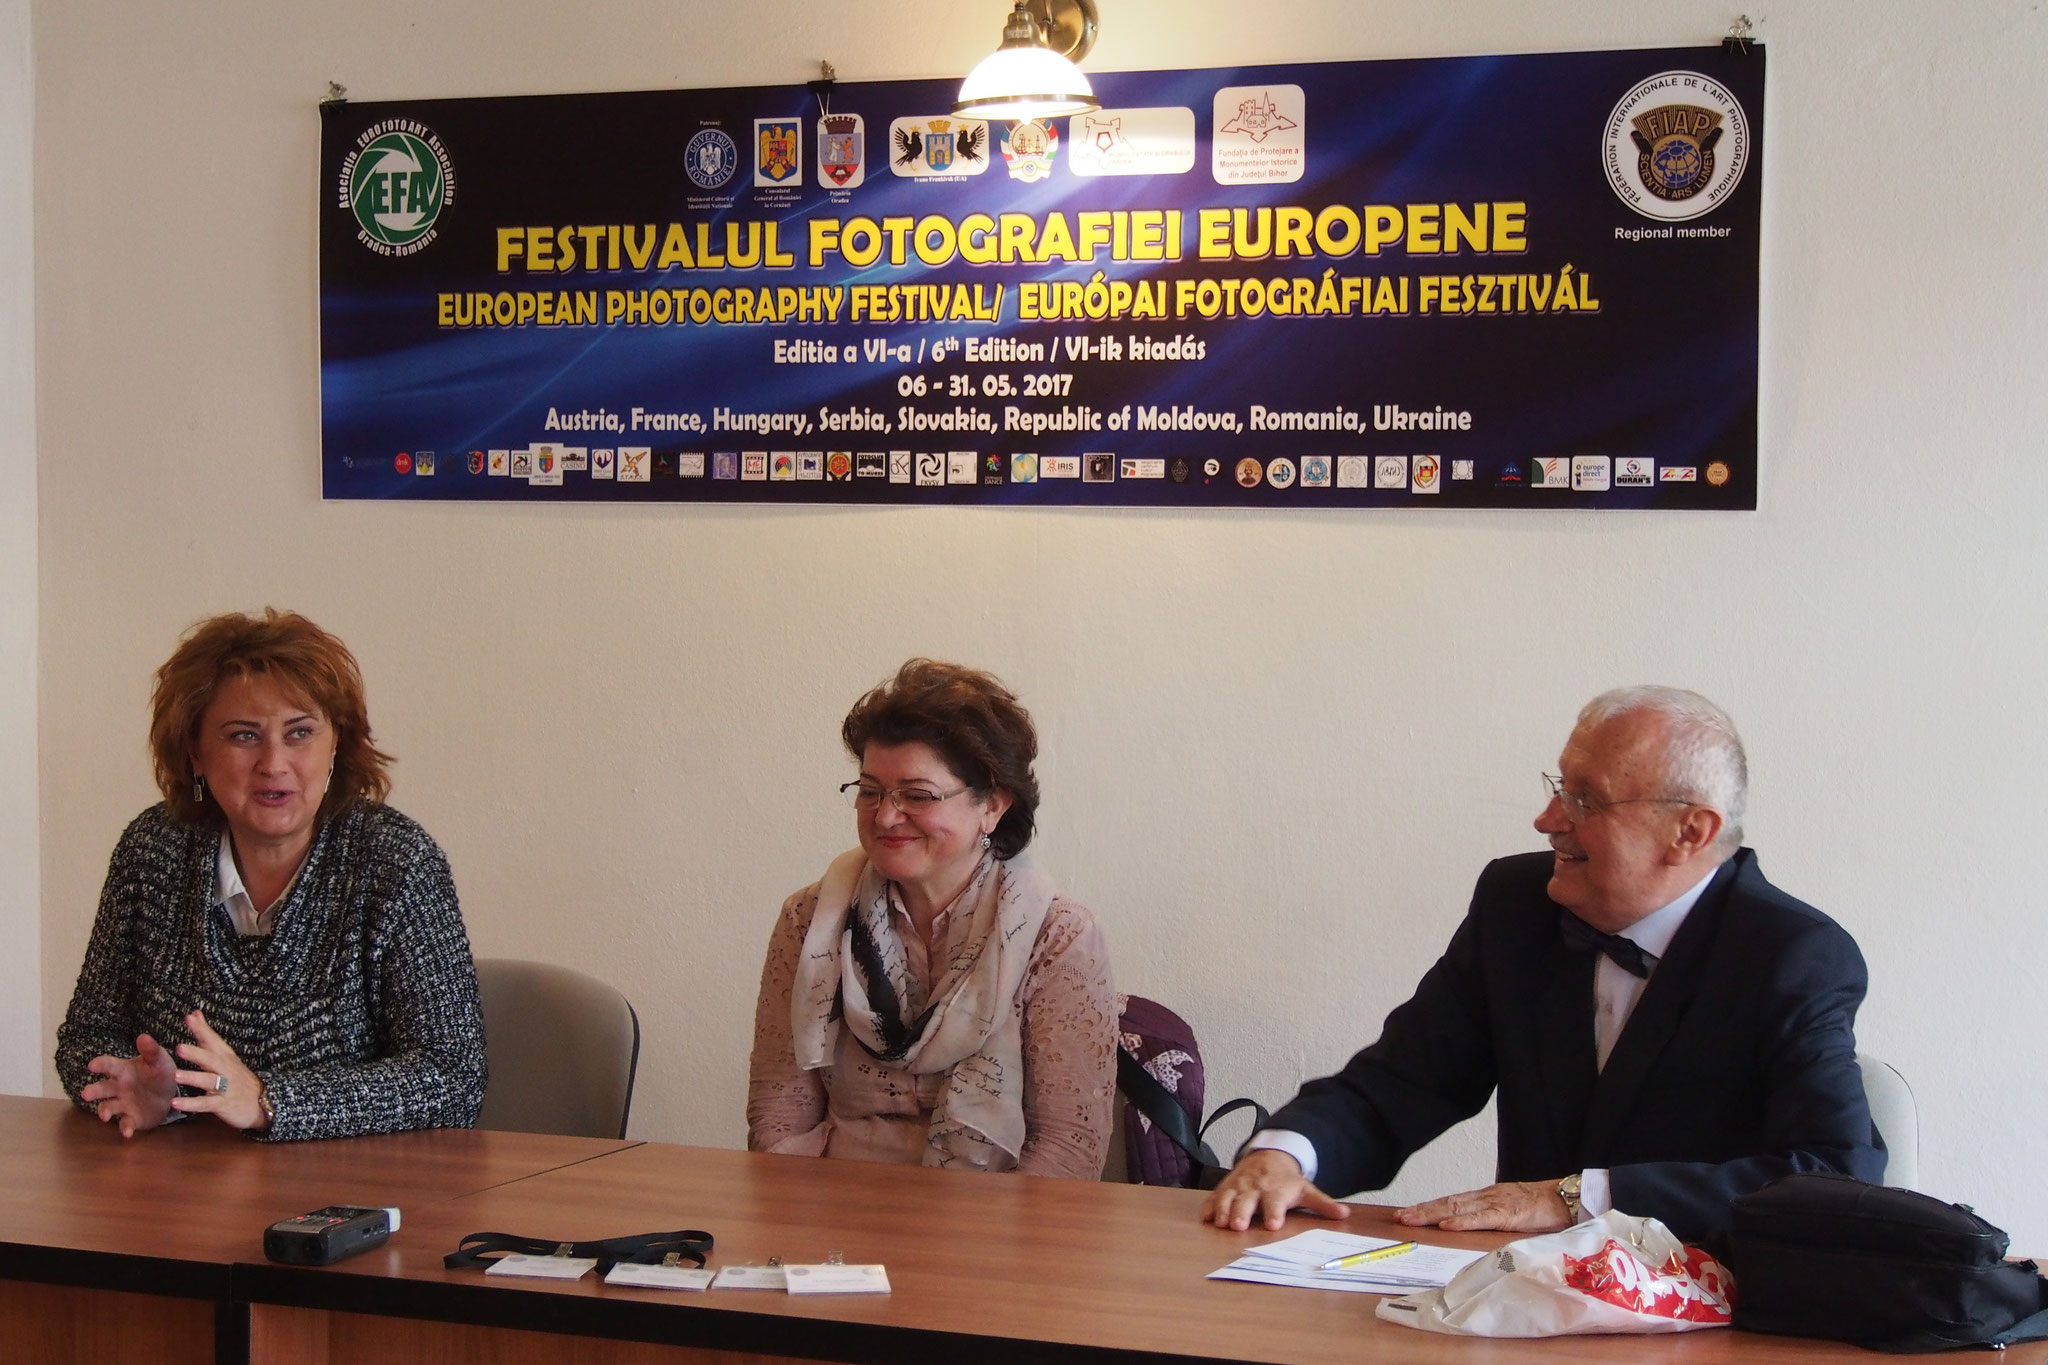 The launching of the European Photograph Festival